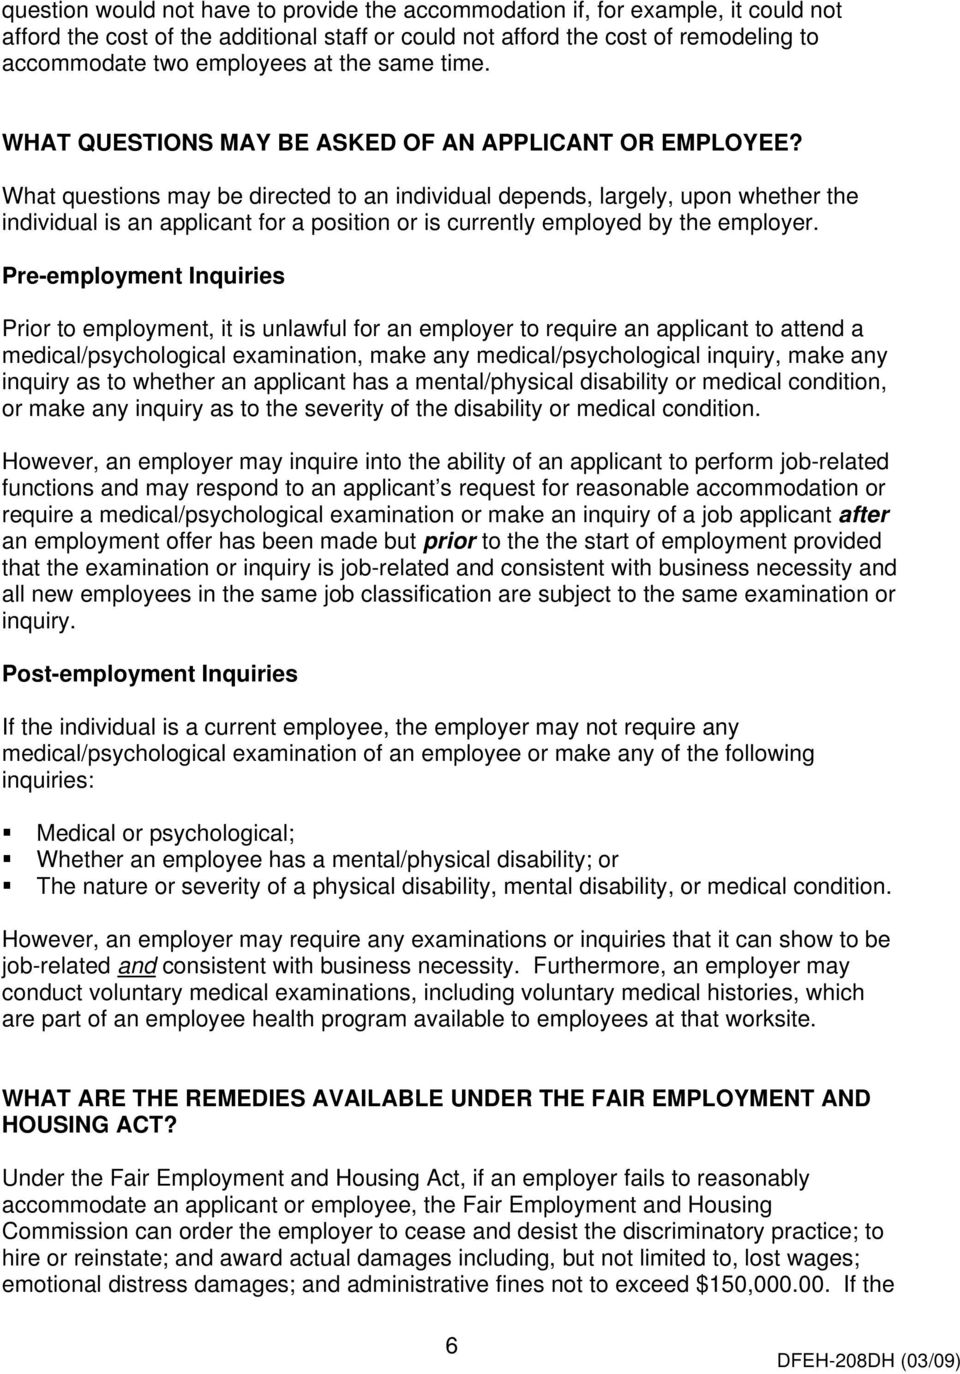 Disability Under the Fair Employment & Housing Act: What you